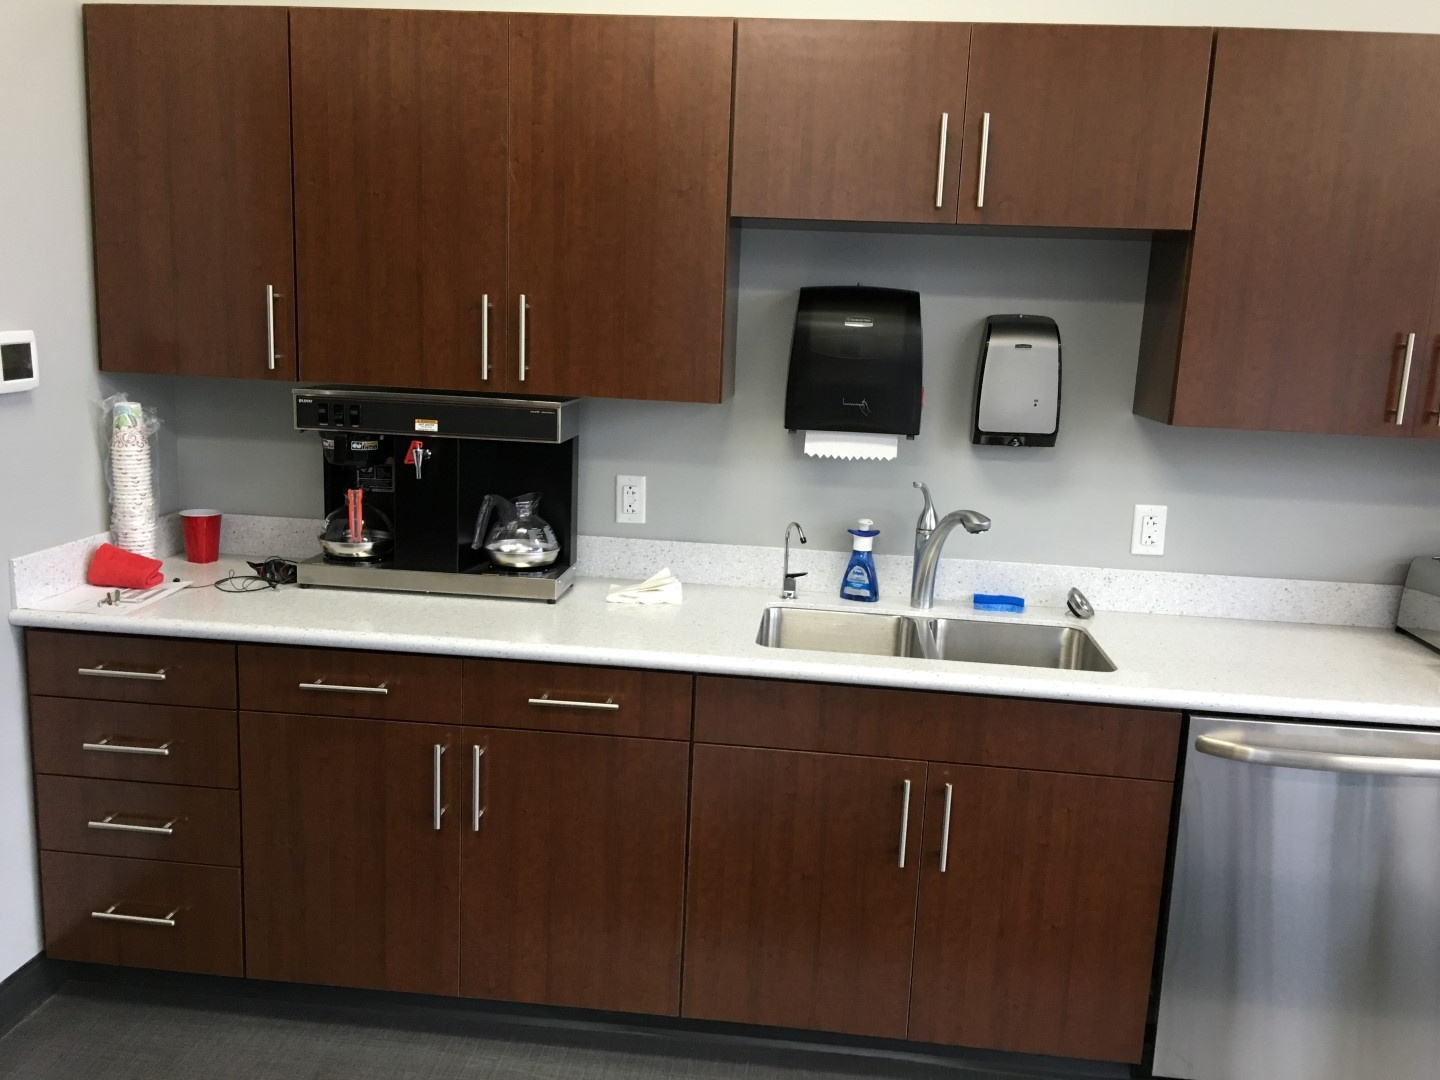 Laminated Breakroom Cabinets Large